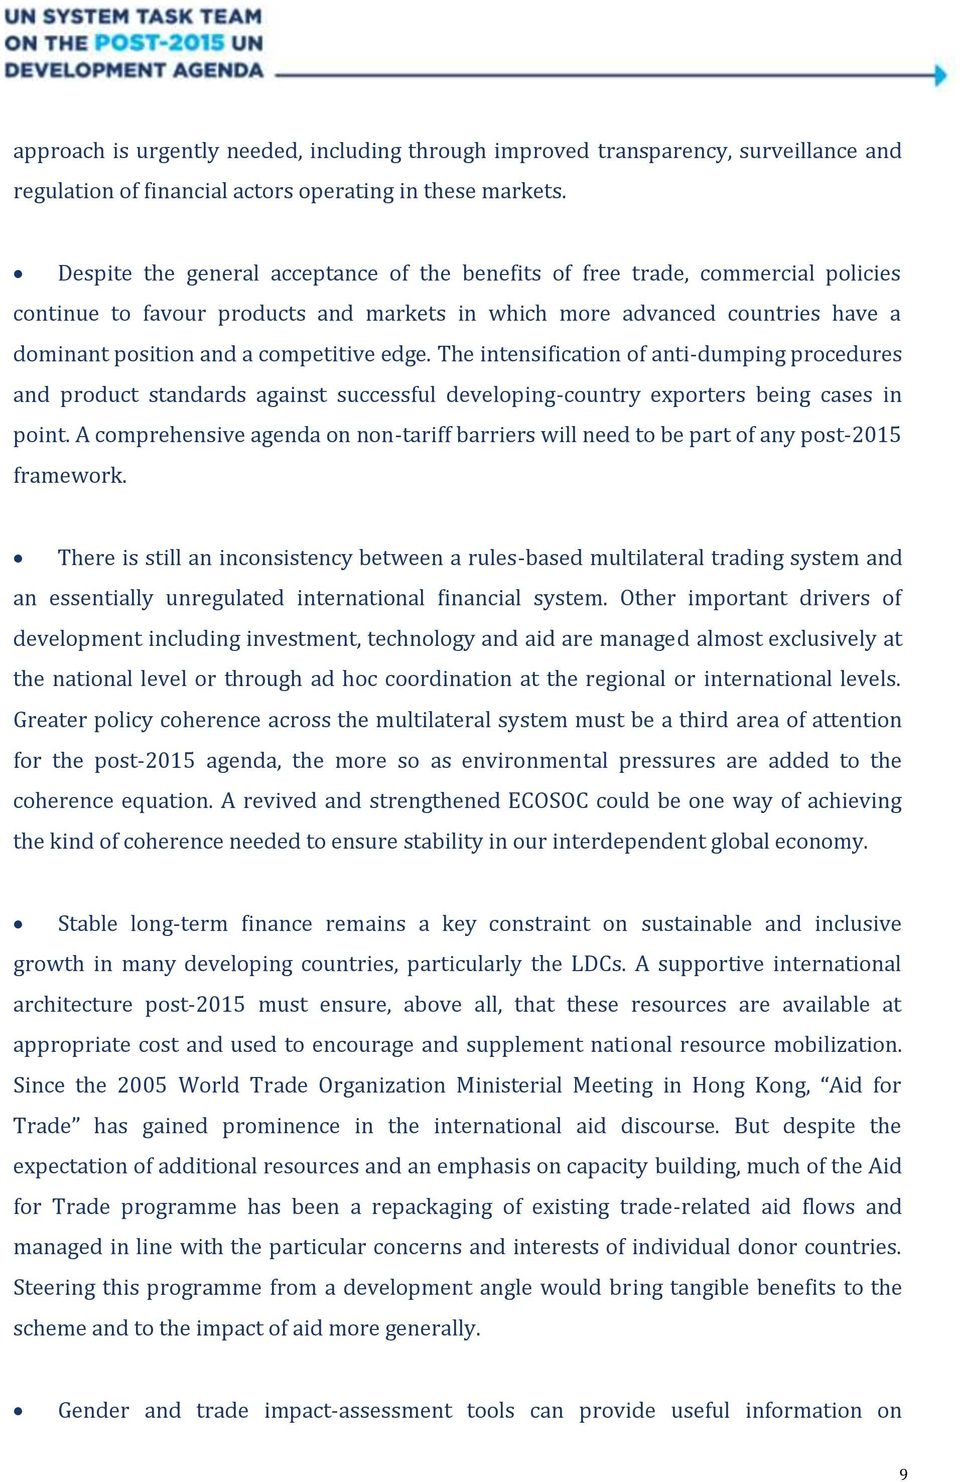 edge. The intensification of anti-dumping procedures and product standards against successful developing-country exporters being cases in point.